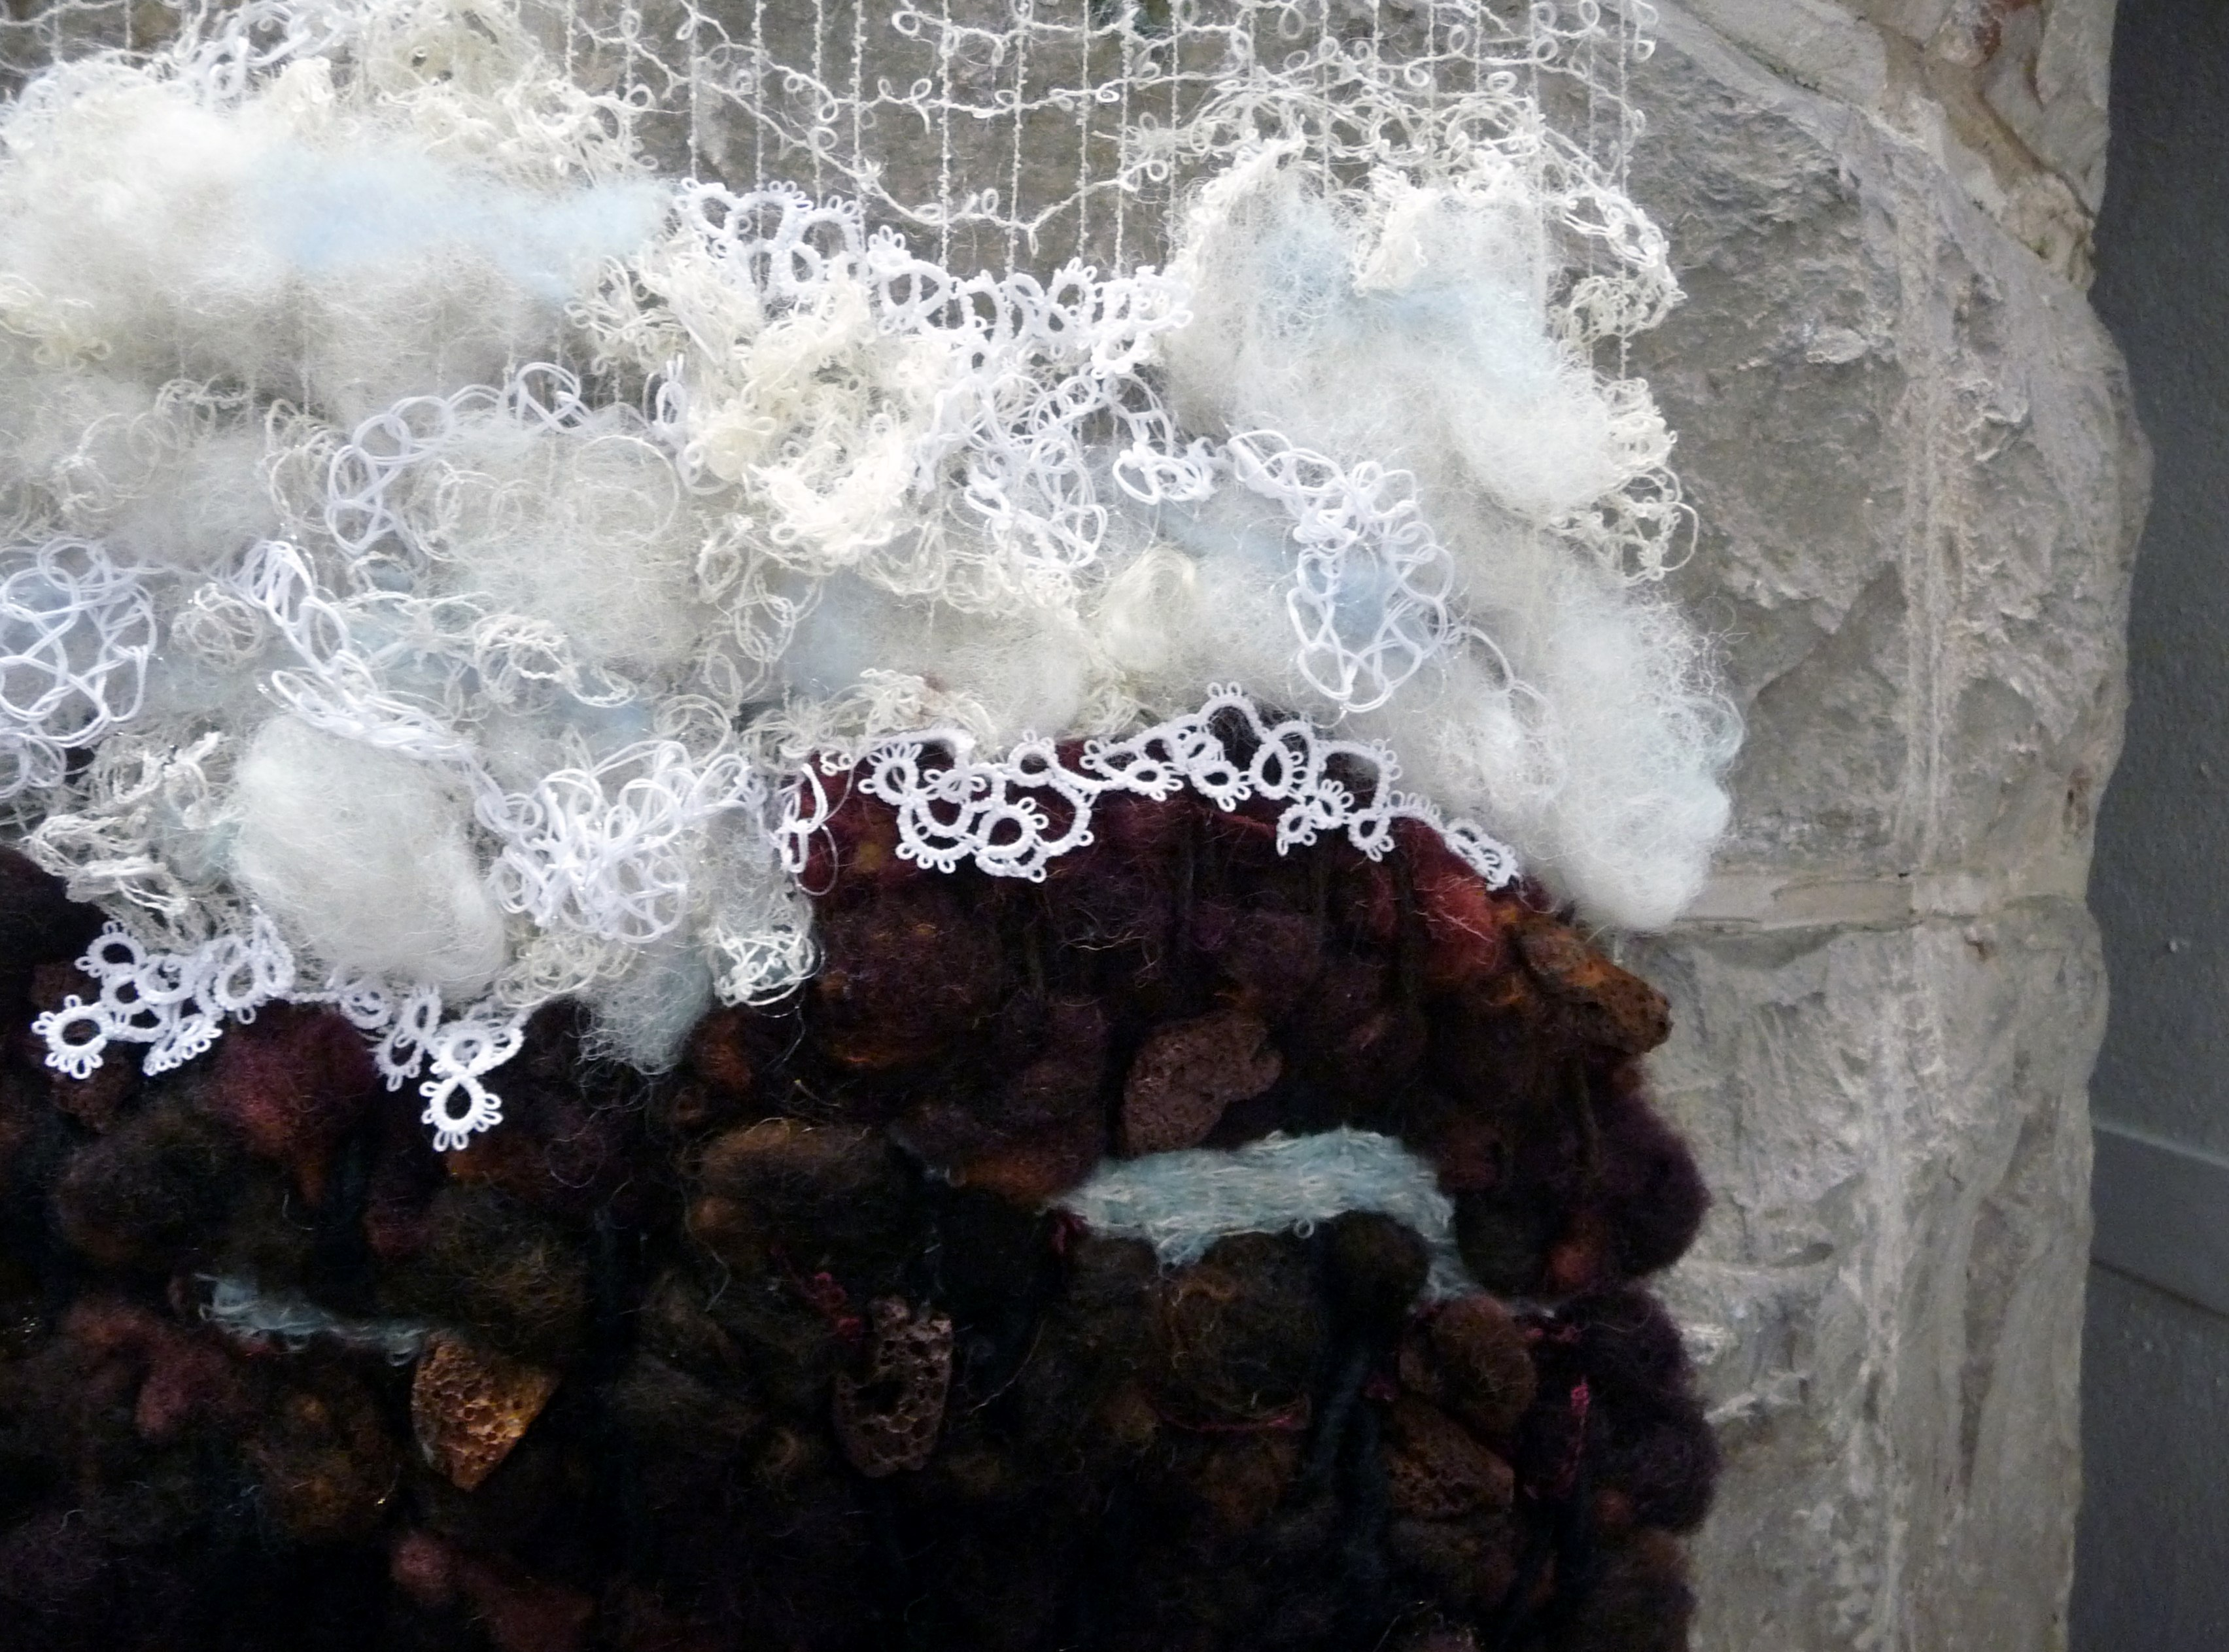 (detail) STORMY SEAS - OFF TENERIFFE by Diana Finn, weaving embellished with tatting & crochet set on dtiftwood